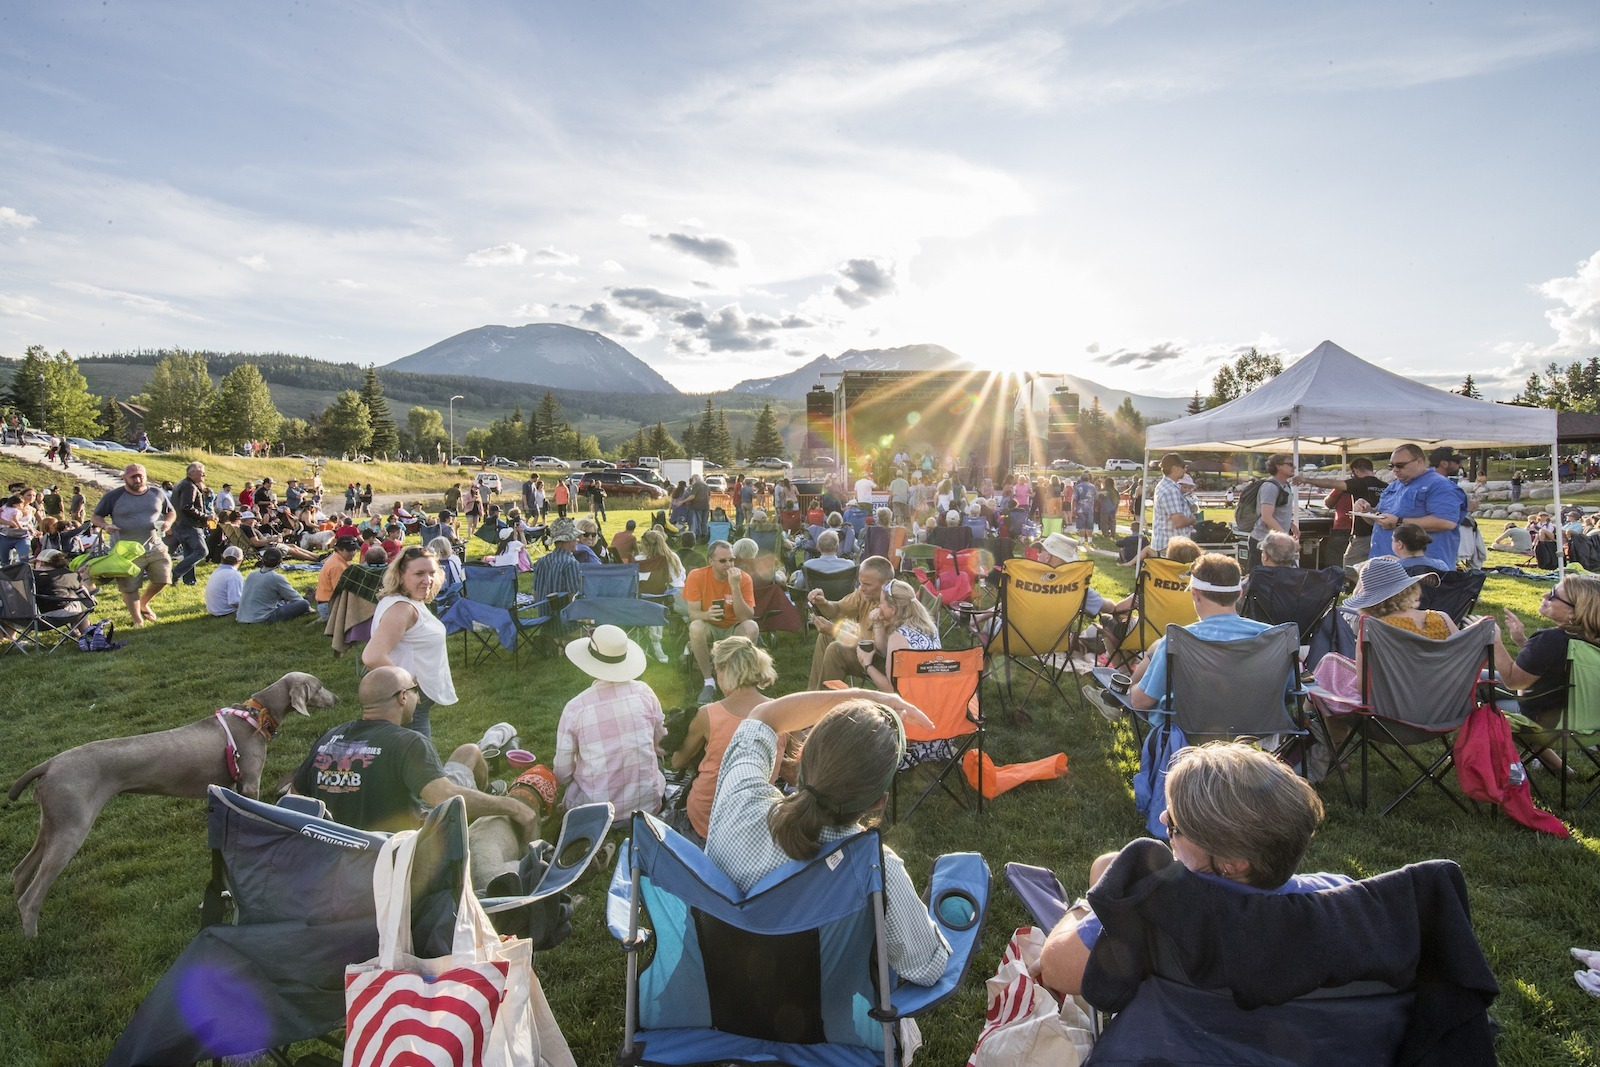 Live, free concert in Silverthorne, Colorado